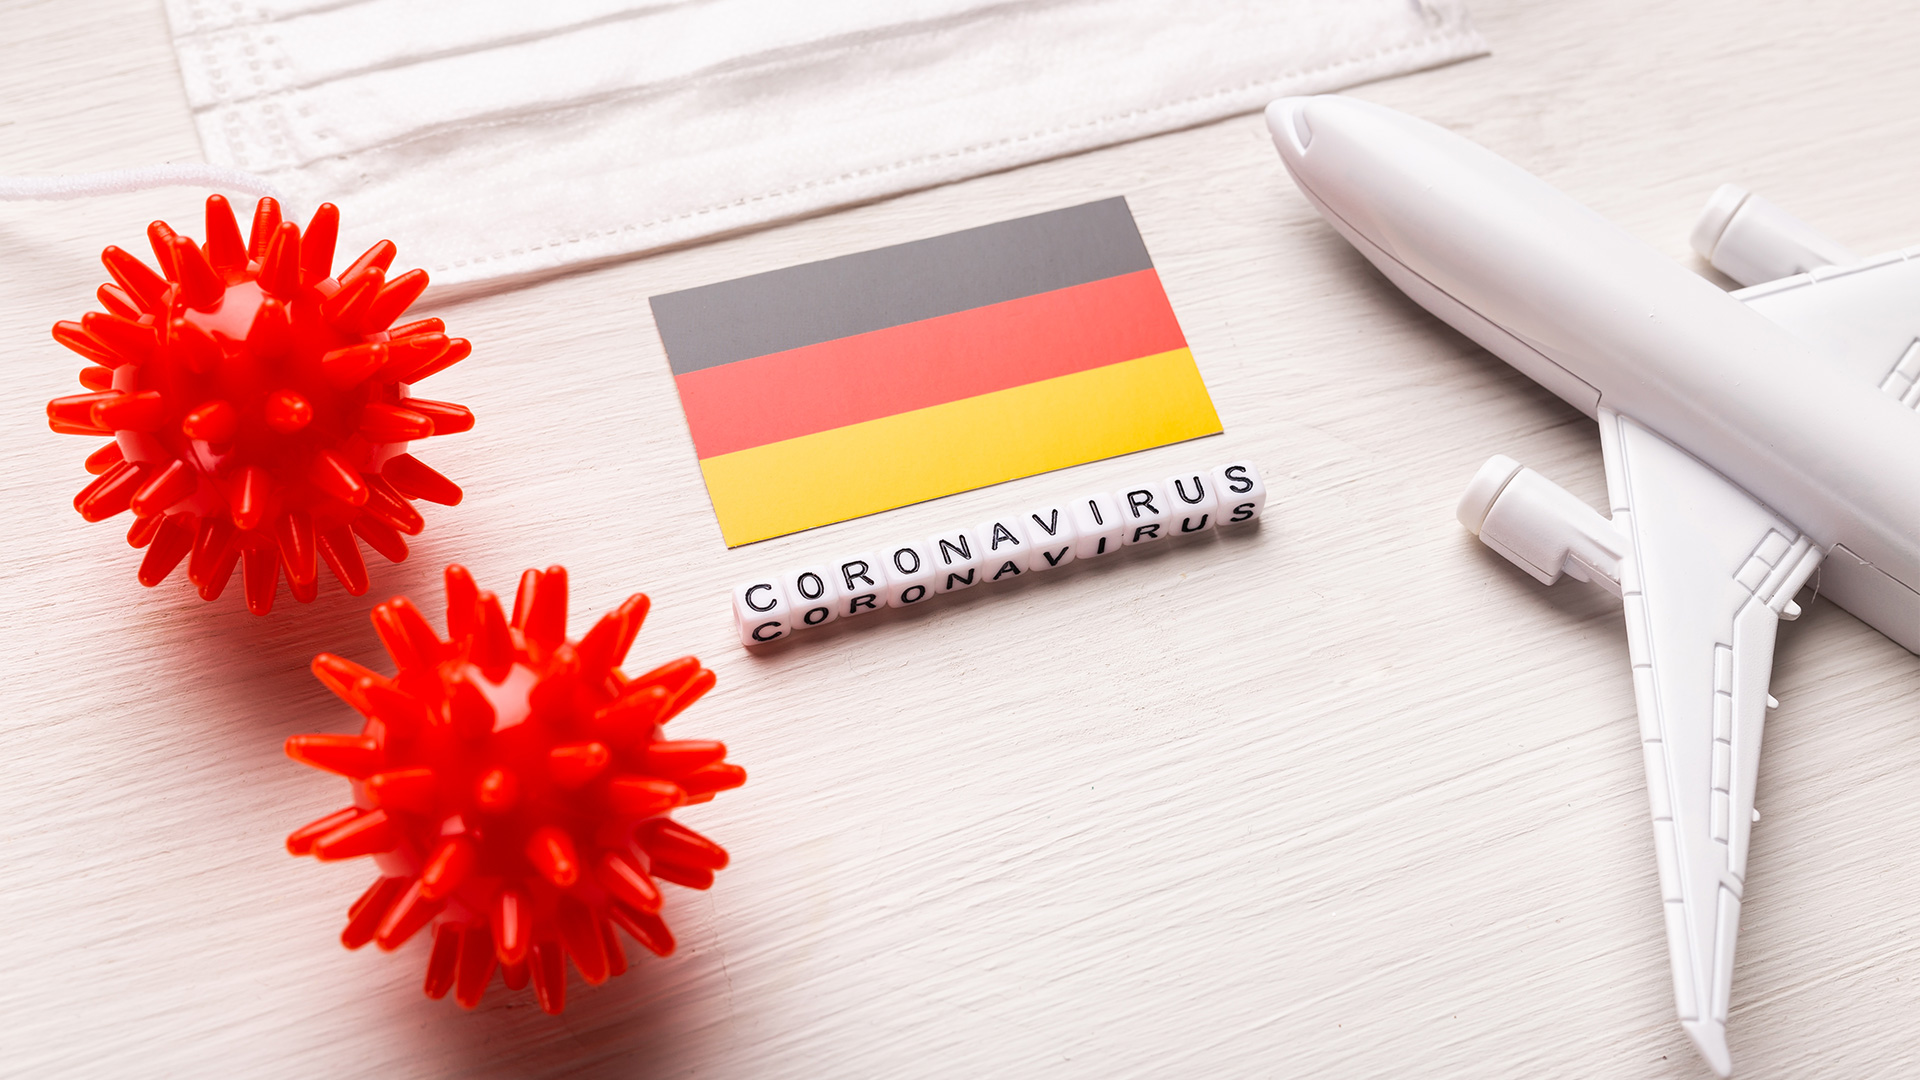 Germany has relaxed quarantine regulations, making it easier for people to travel